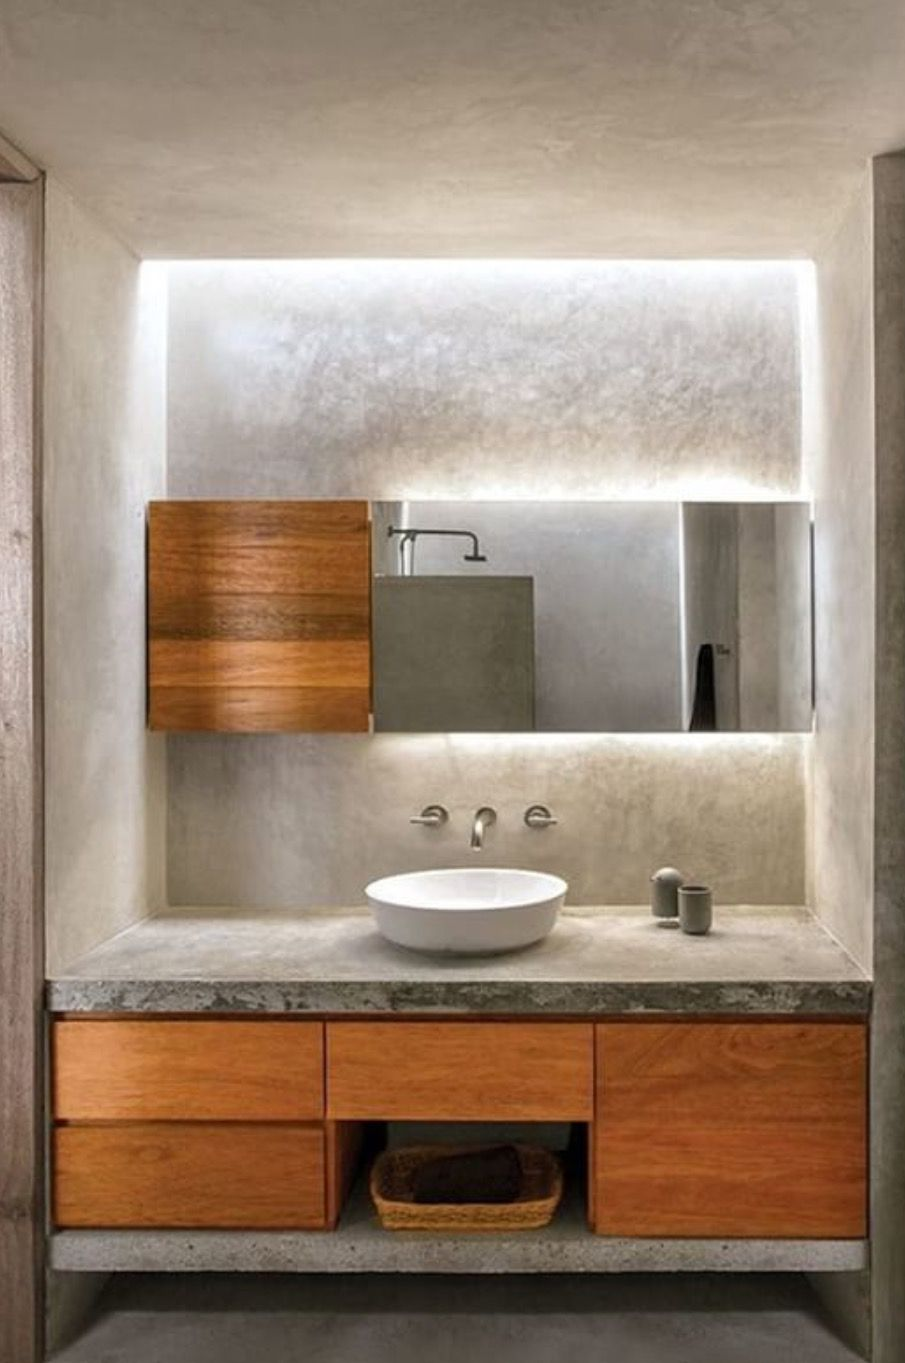 Pin by suvarna purohit on modern interior decorating ideas in